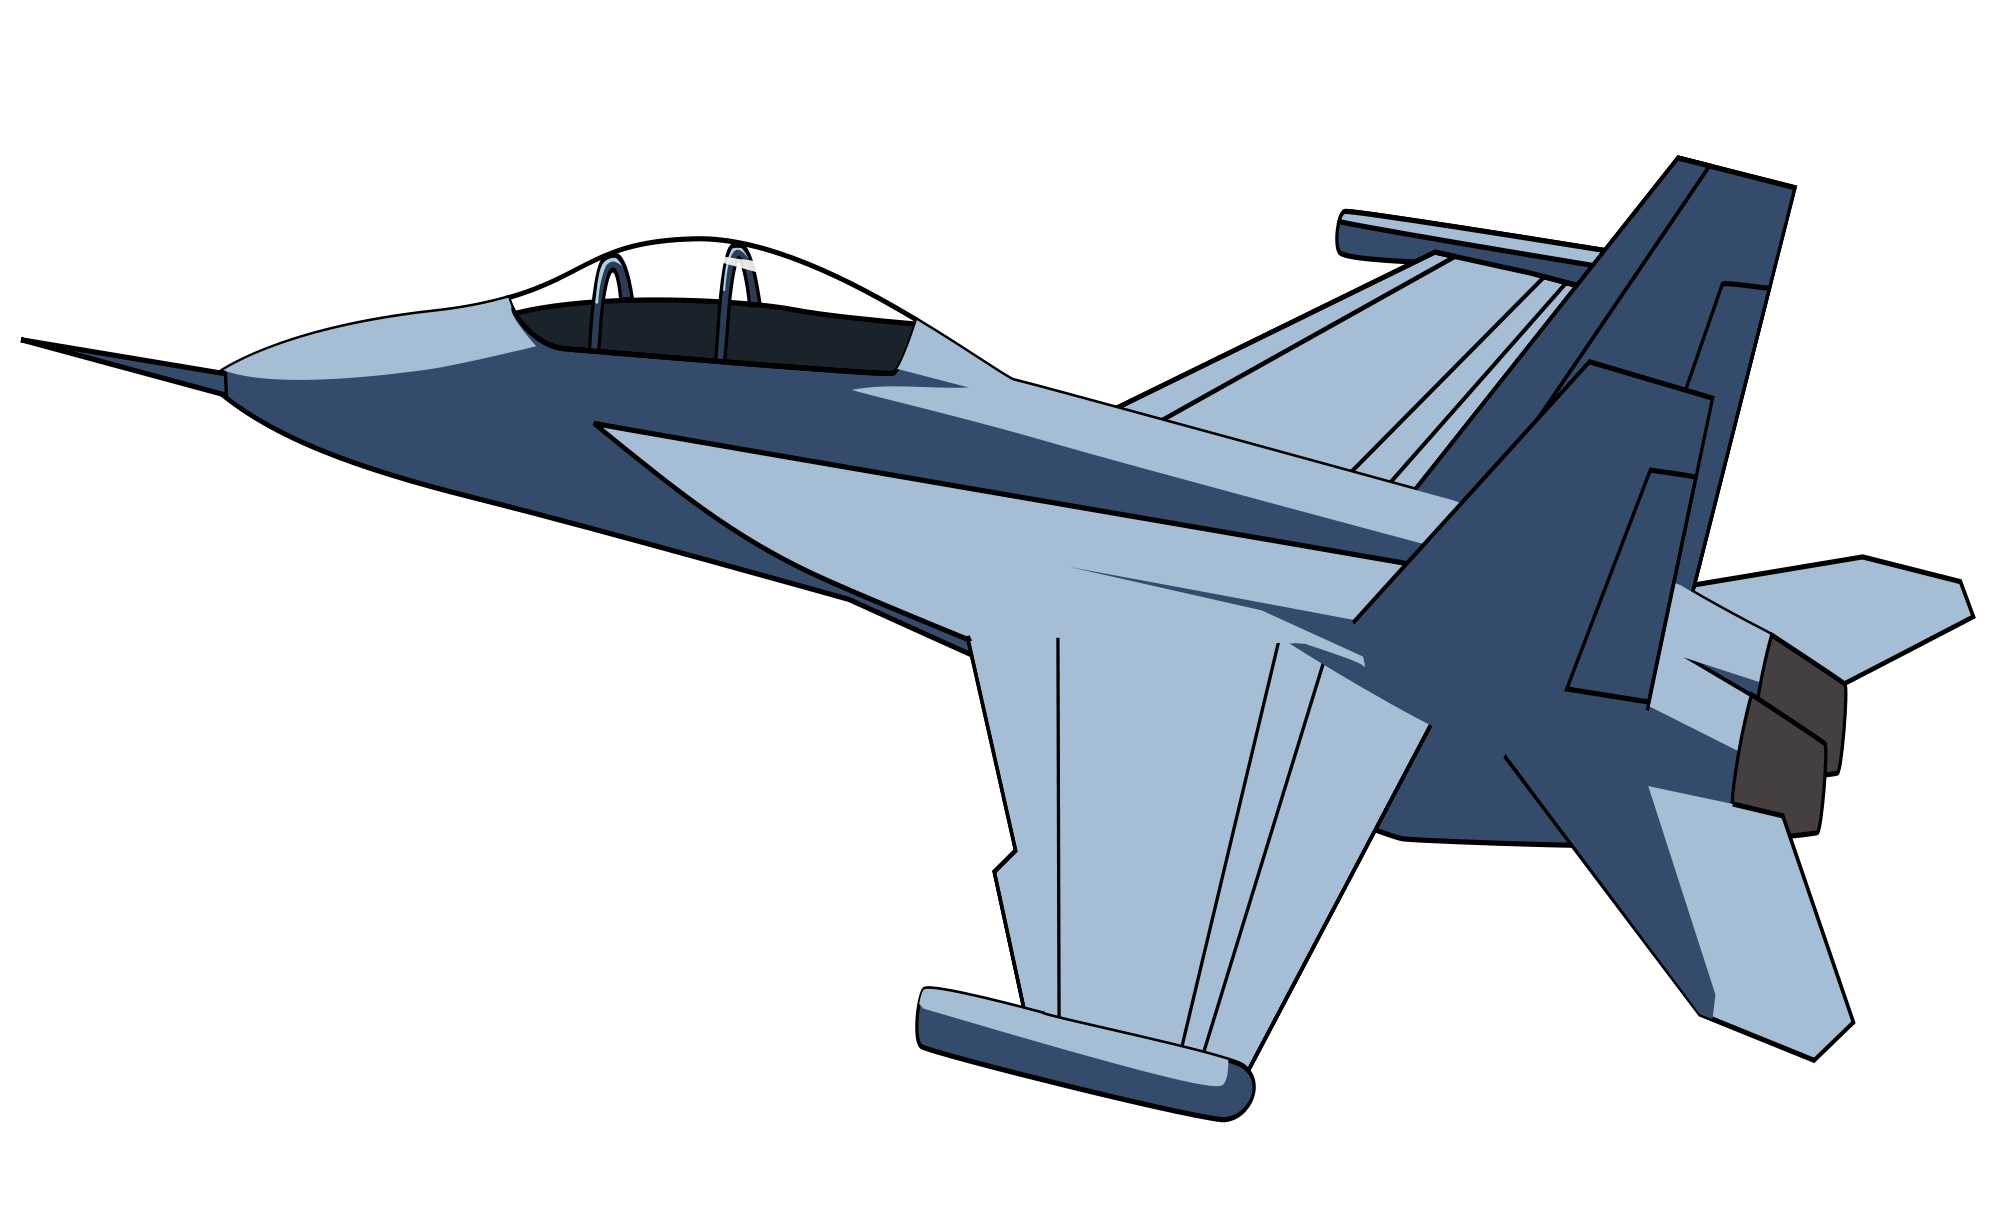 jet airplane clipart at getdrawings com free for personal use jet rh getdrawings com jet clipart images clipart jet d'eau